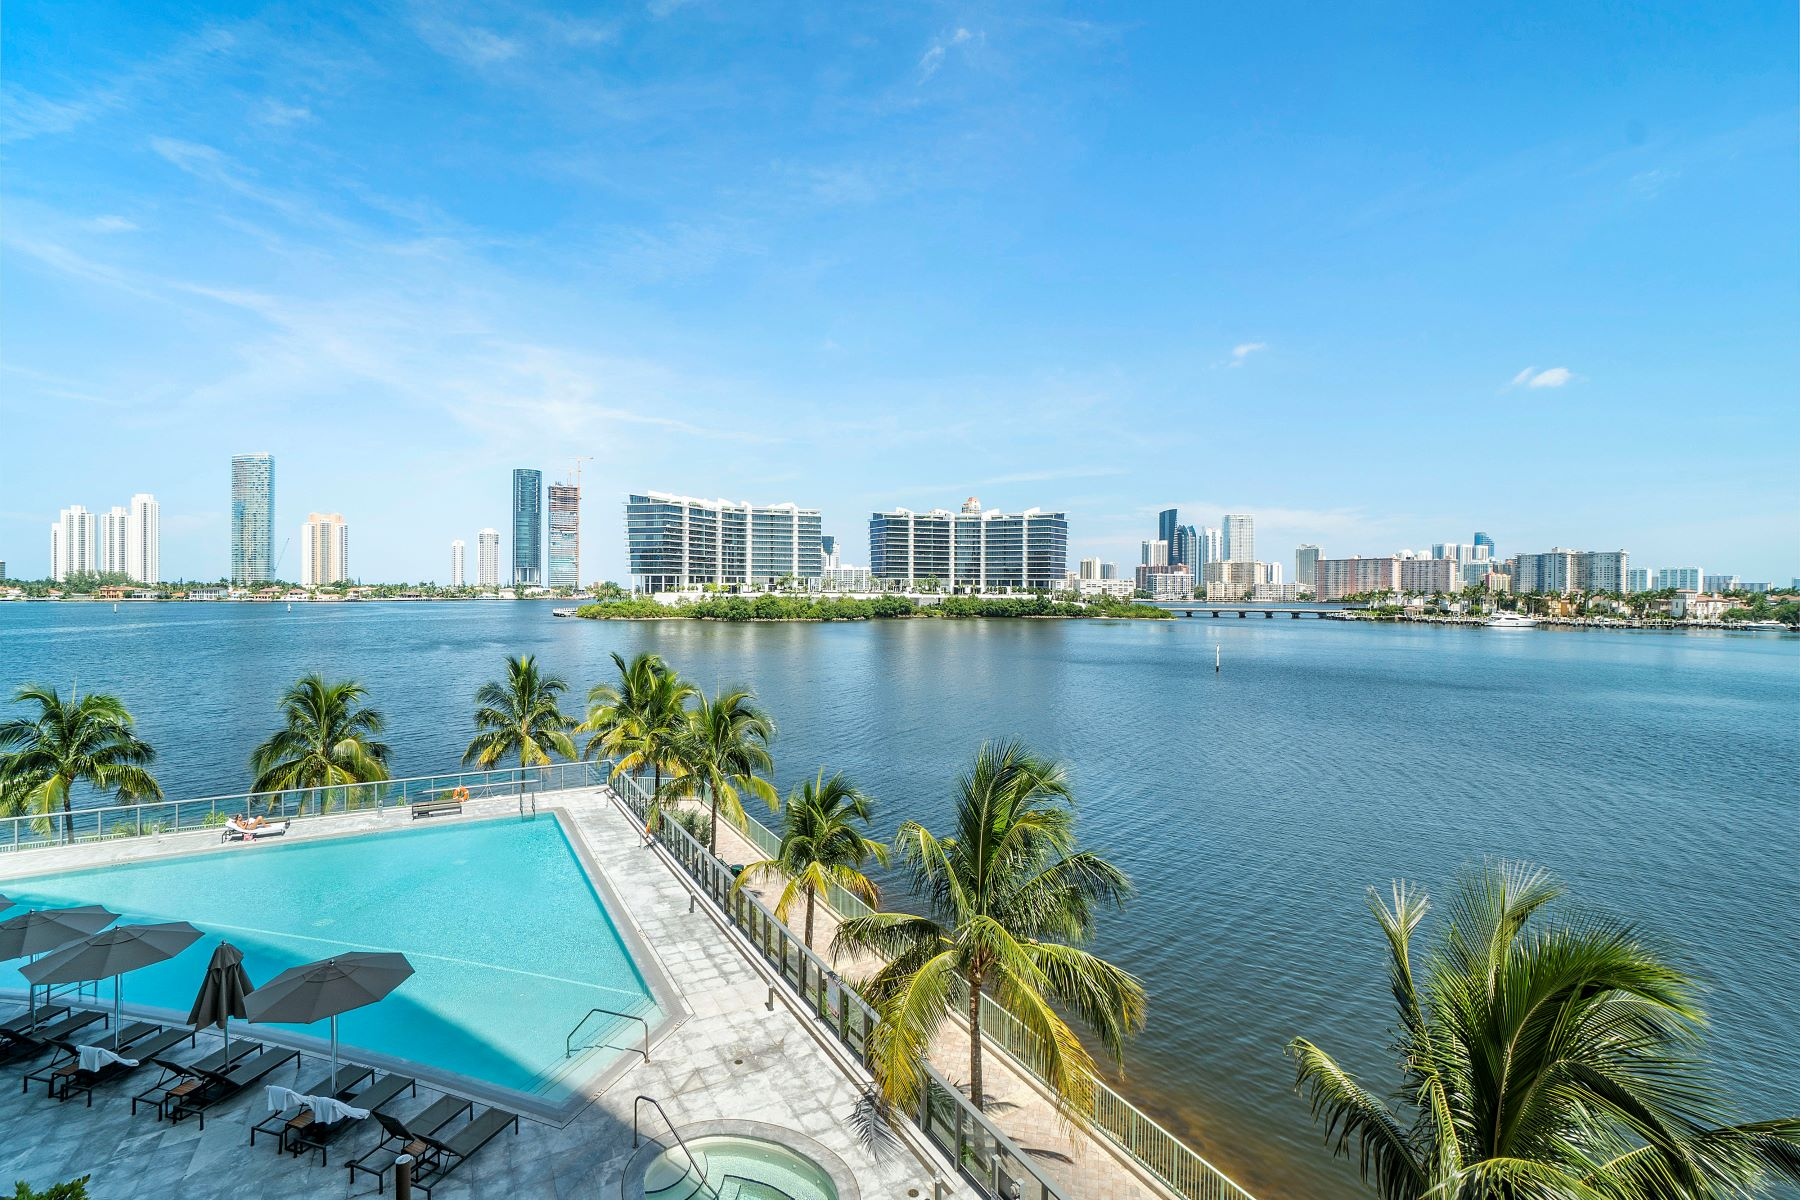 Condominiums for Sale at 3300 Ne 188th St 314, Aventura, Florida 33180 United States